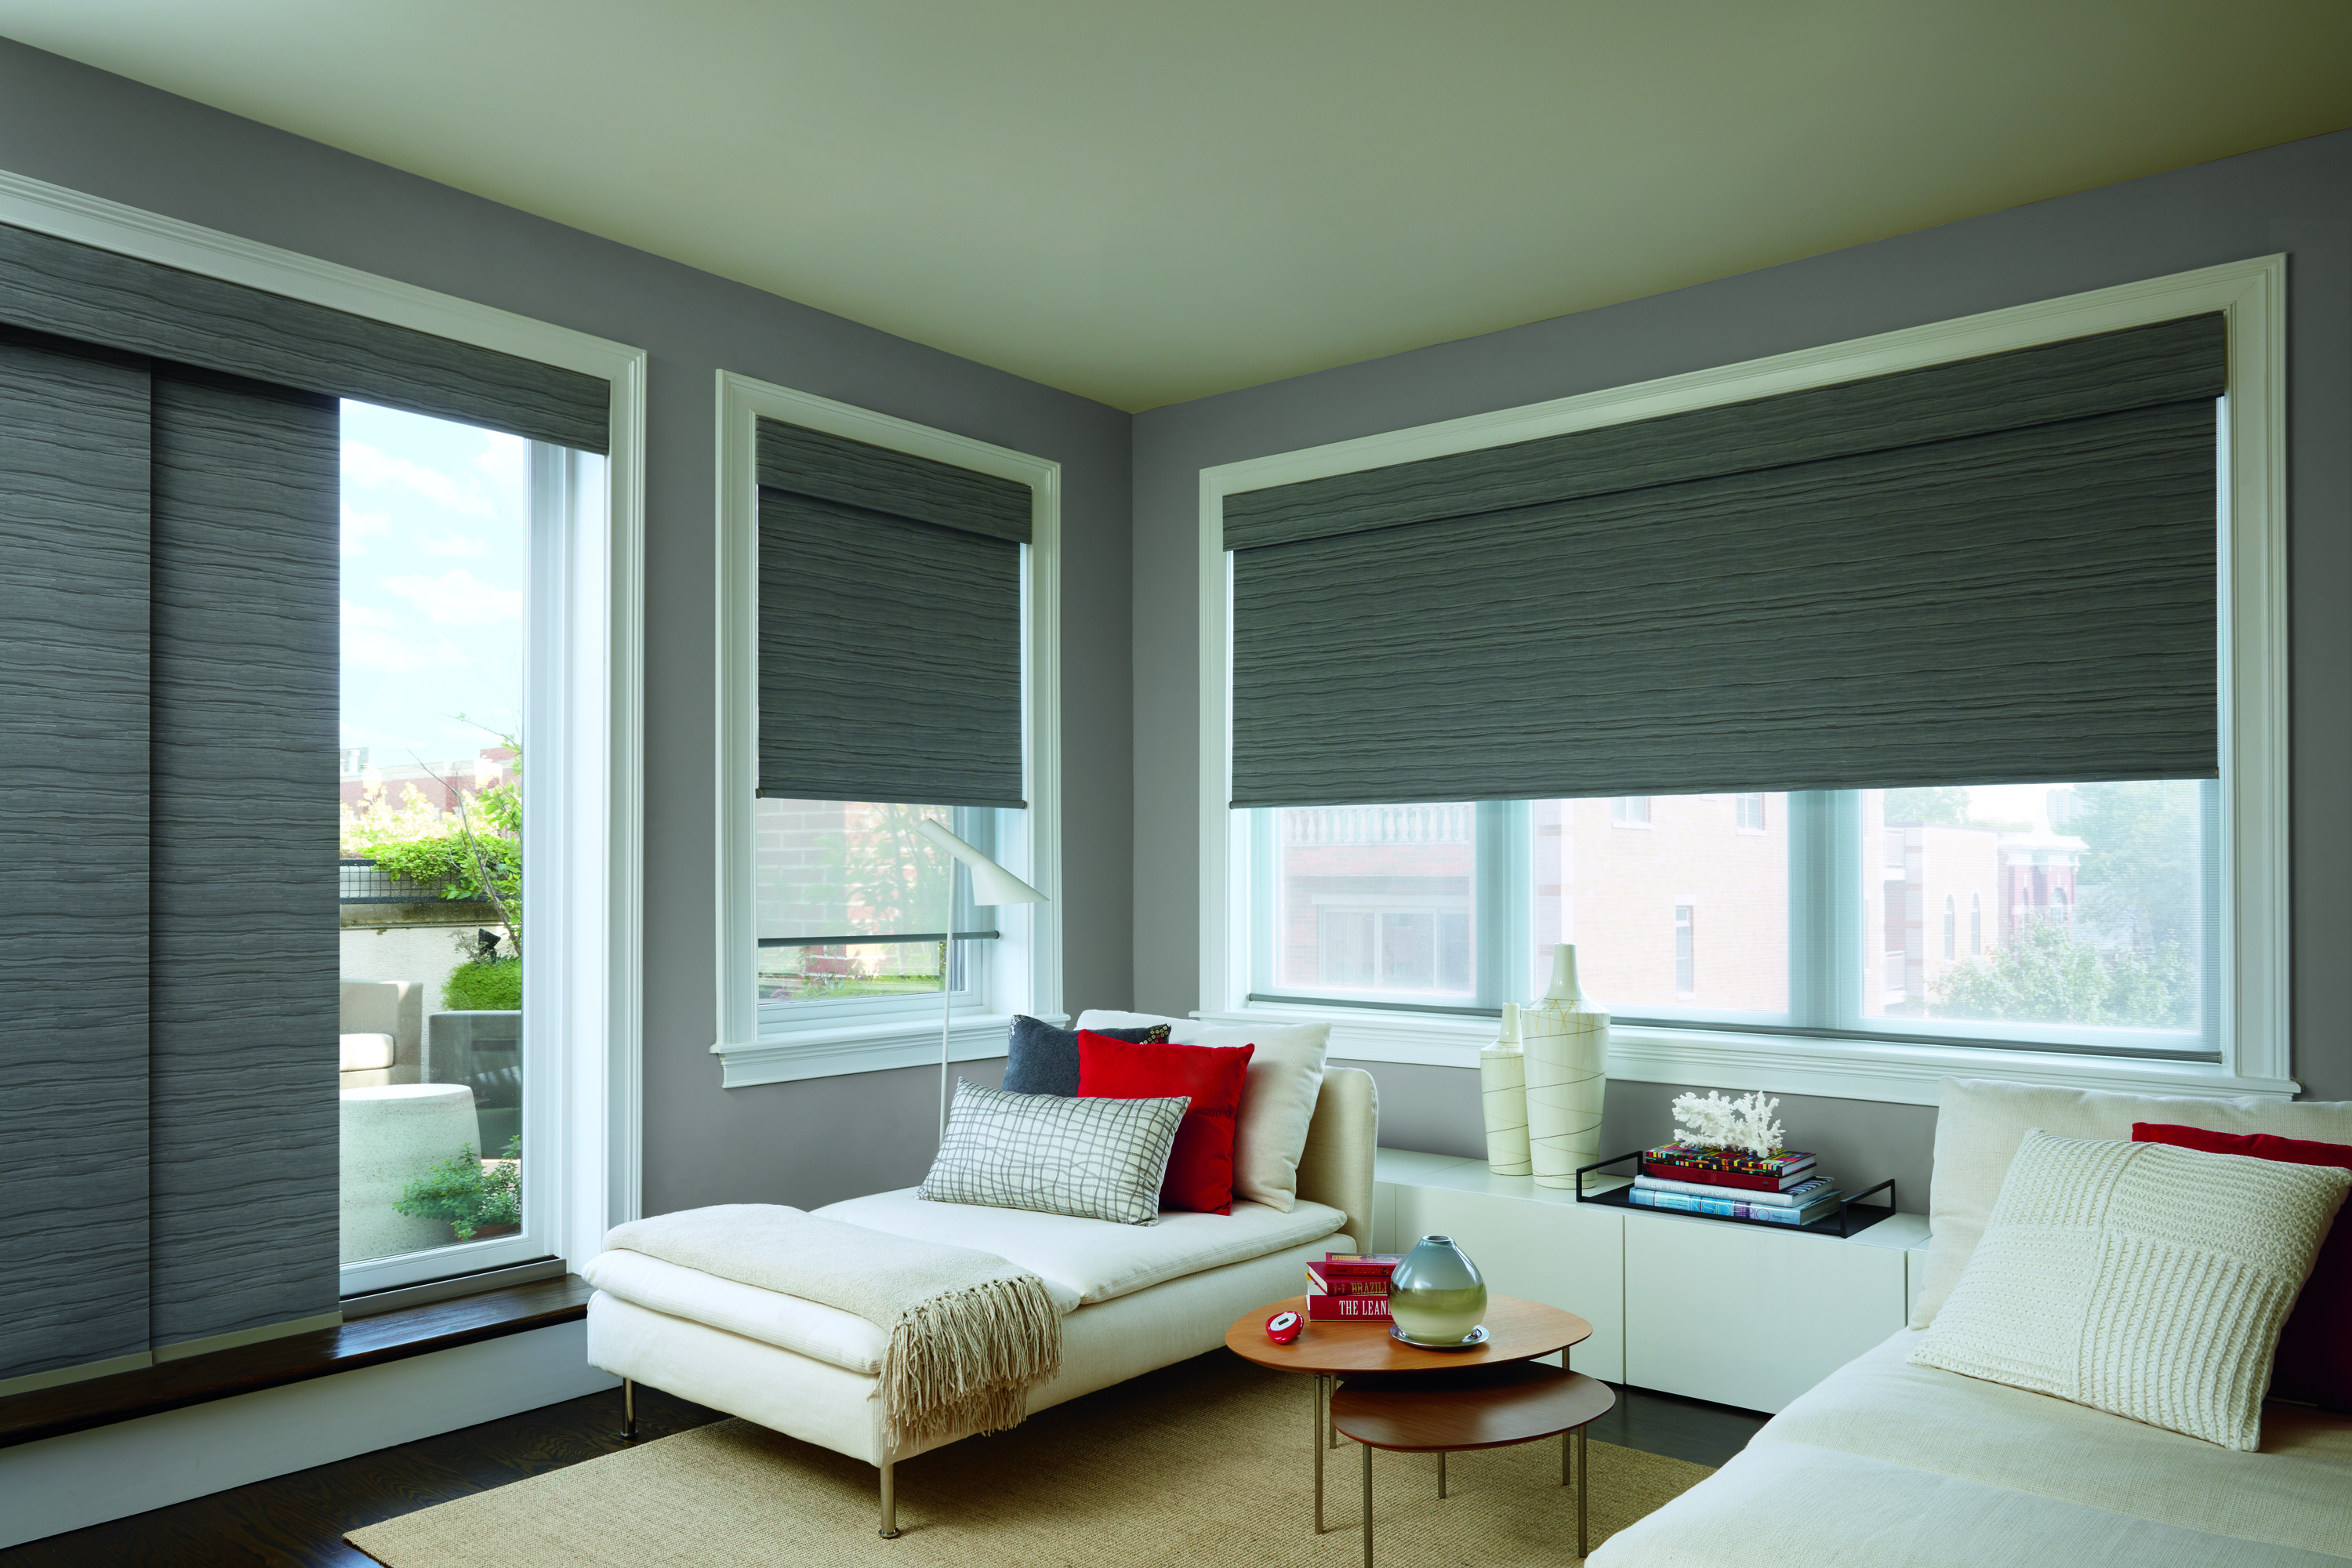 buy blinds best darkening by serena motorized room p lutron cellular shades thehomedepot